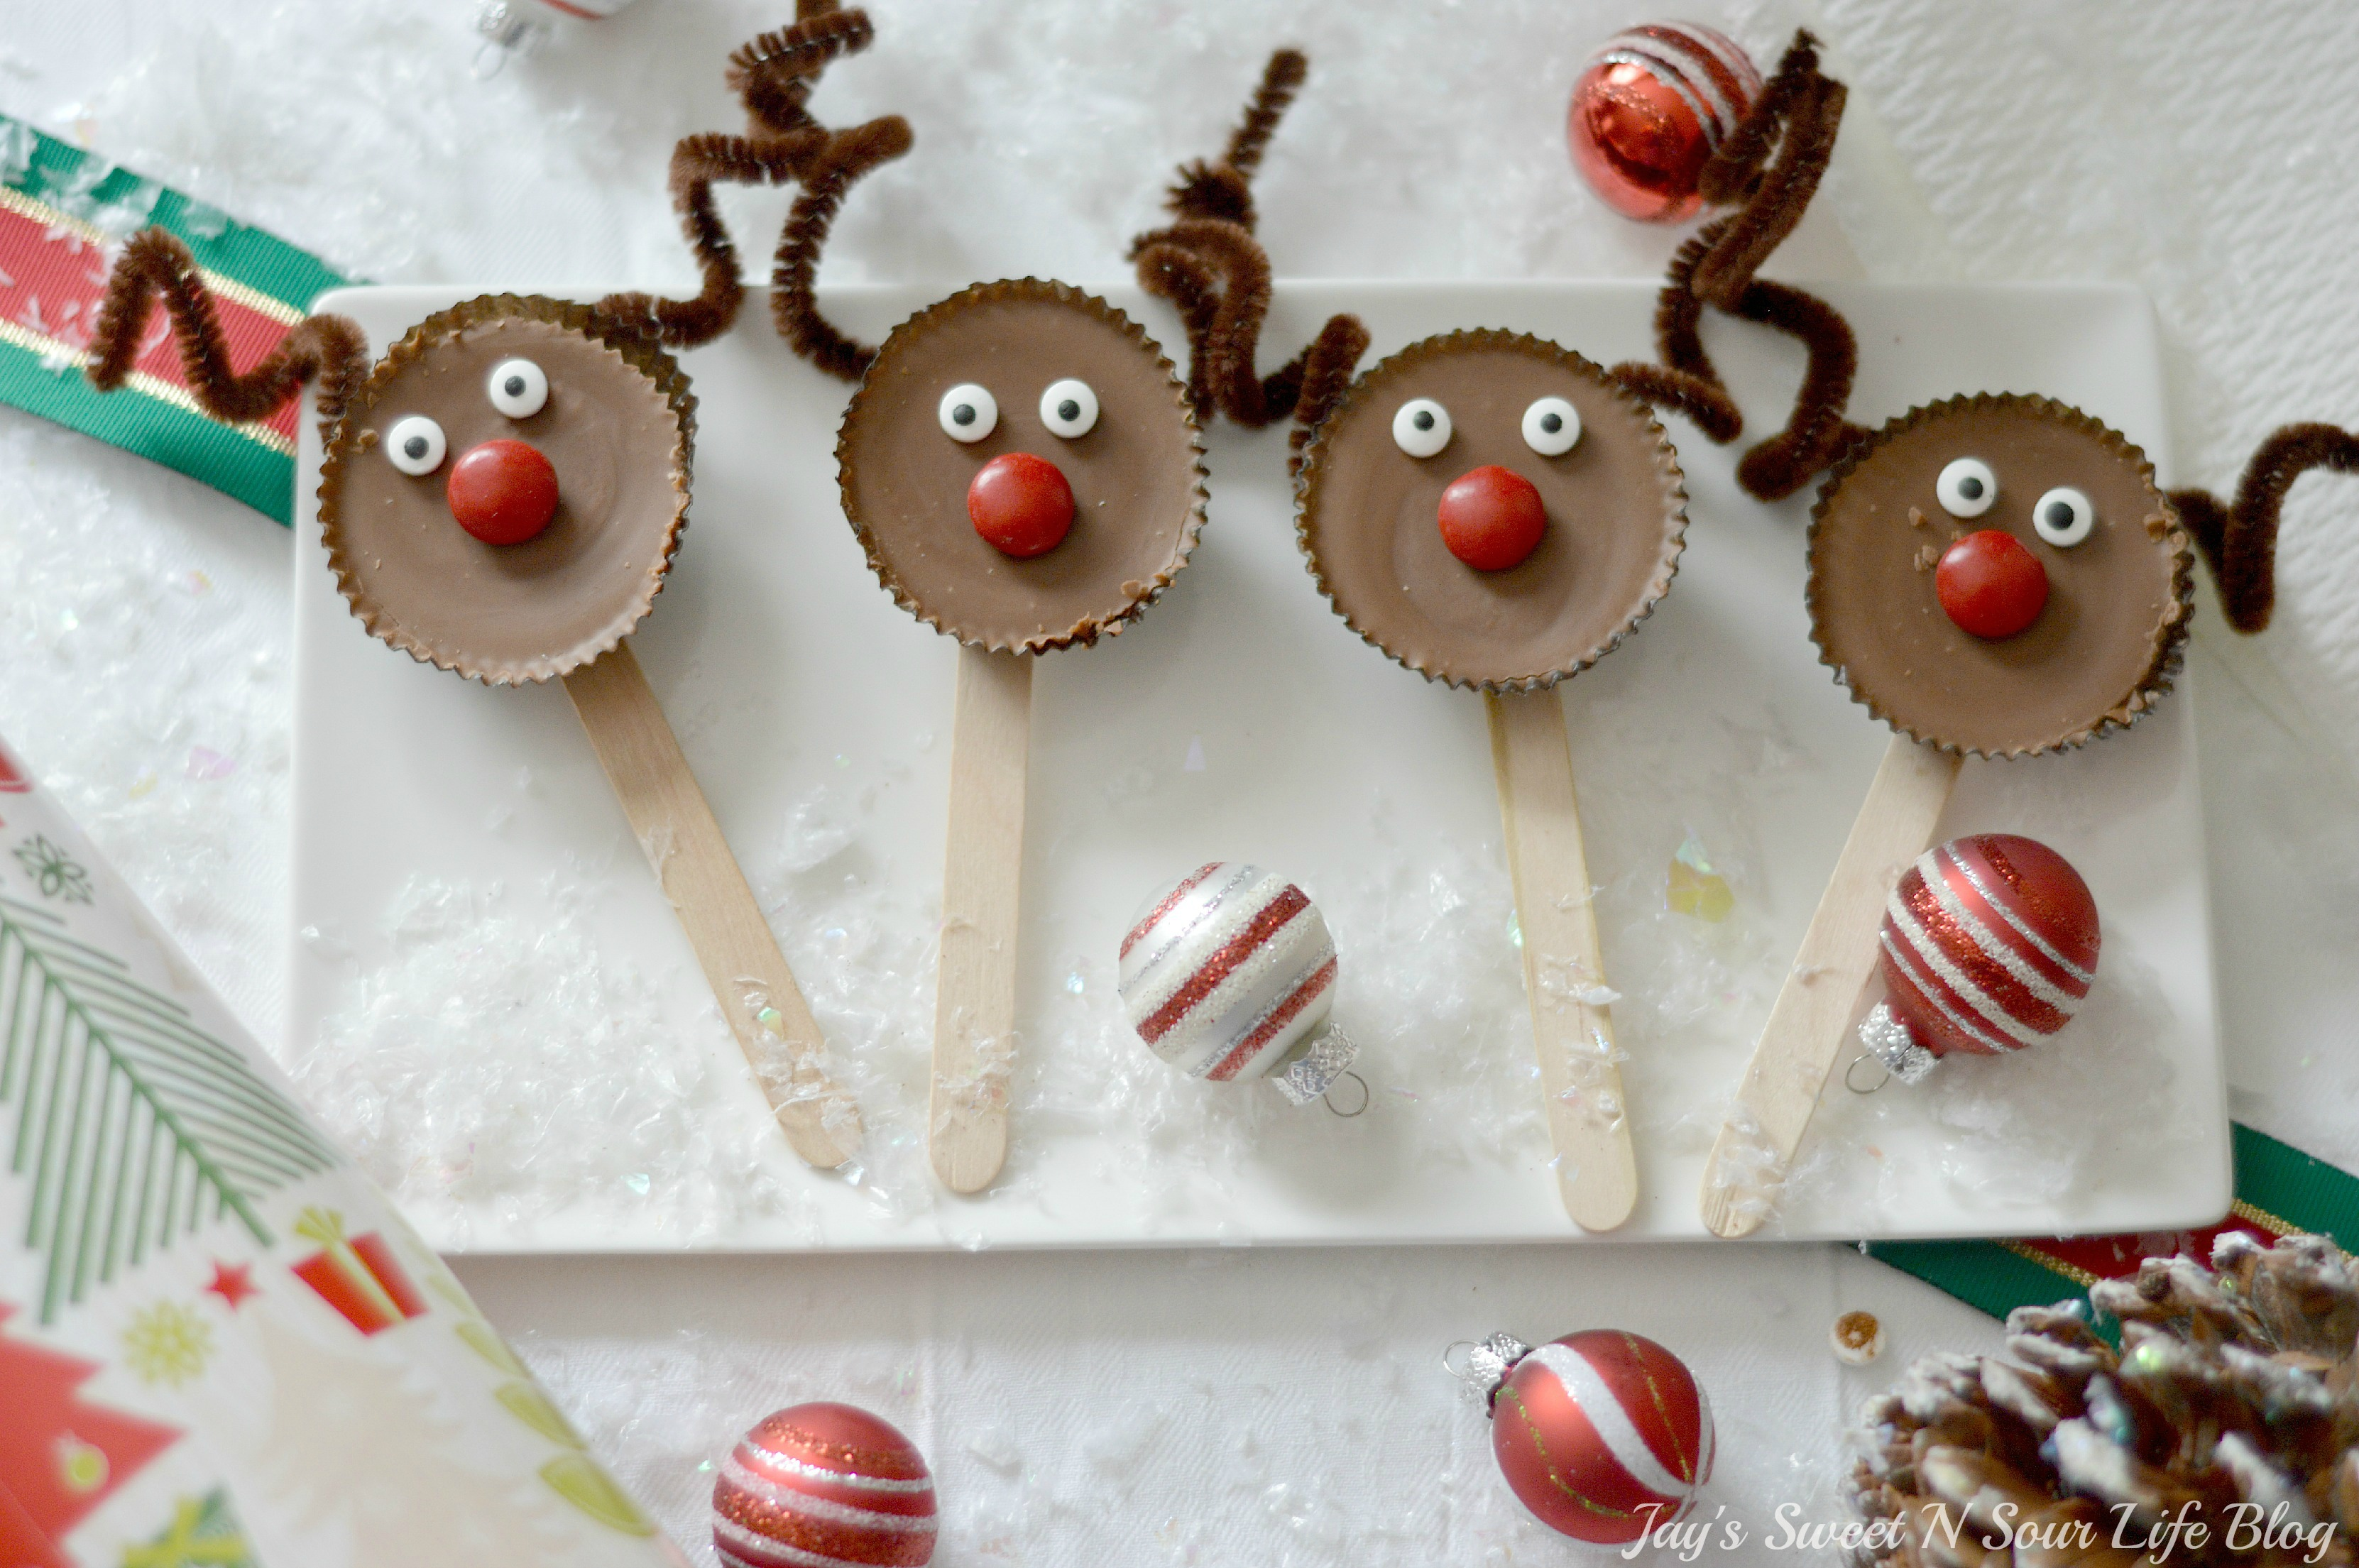 Edible Reindeer Christmas Craft. Edible Reindeer Display. Fun and easy to make, dash into the holiday season with an adorable Edible Rudolf. This Edible Christmas Craft is kid-friendly and perfect for holiday parties and gatherings.